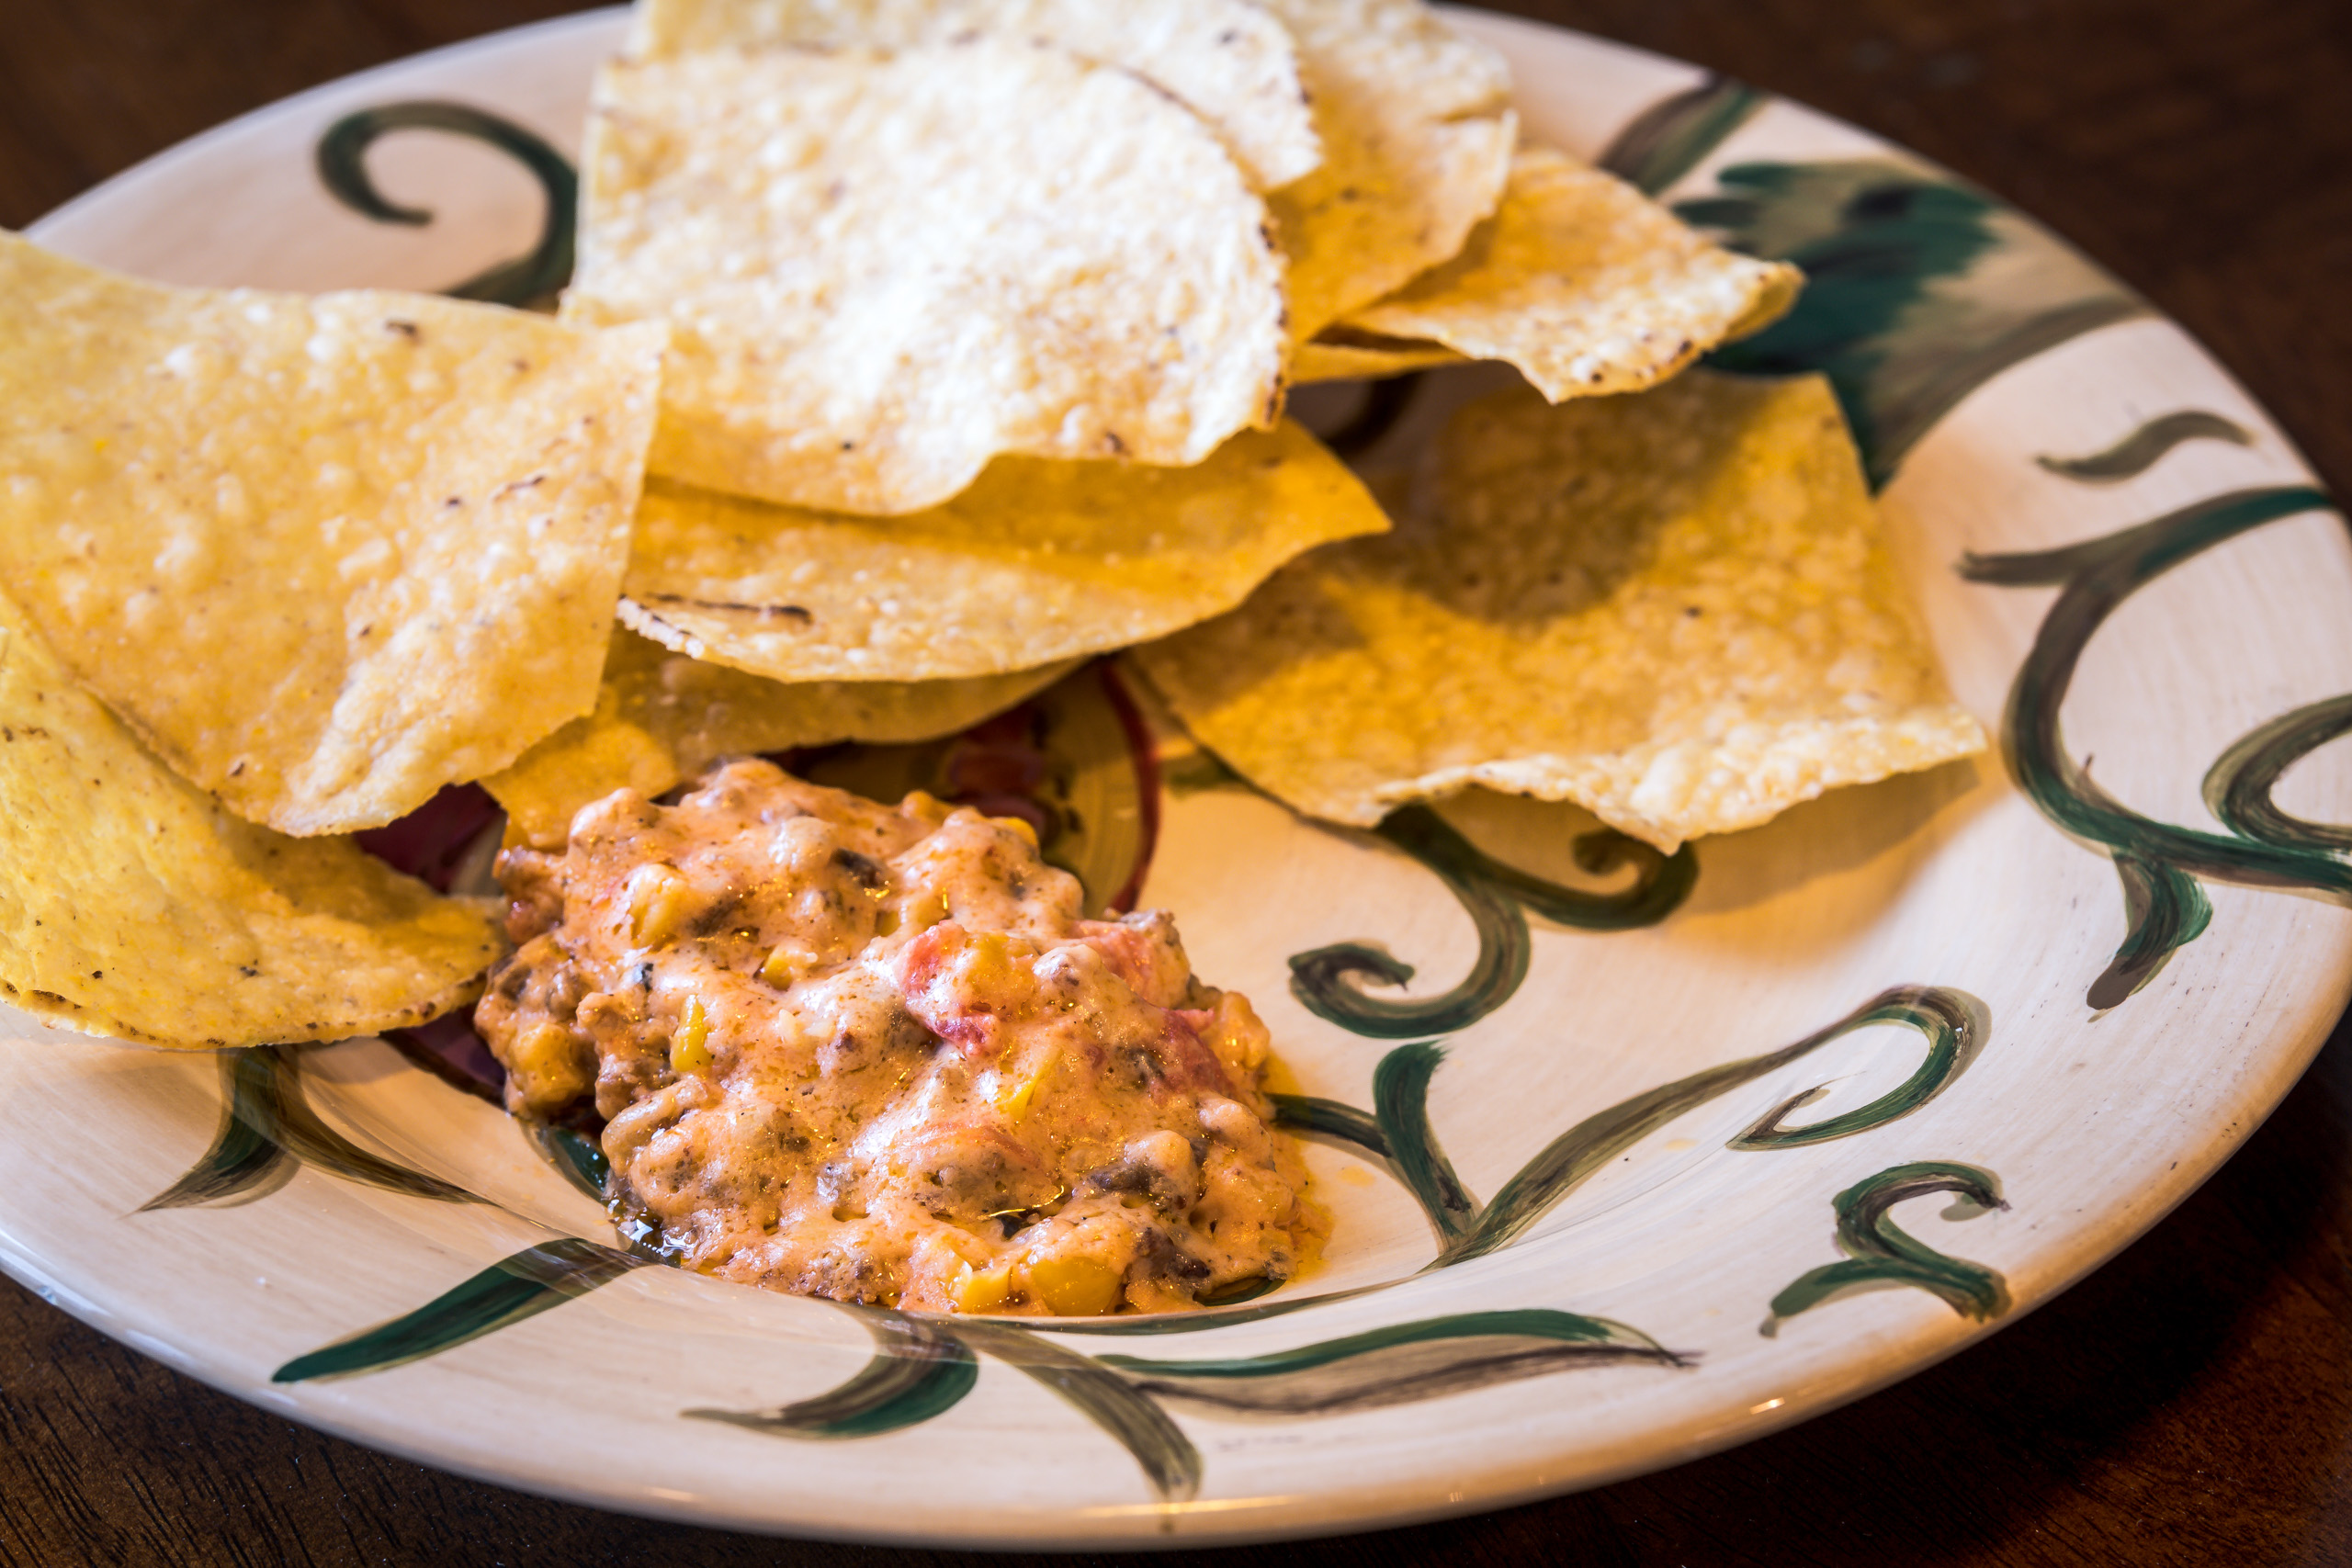 Spicy Sausage Dip with some tortilla chips